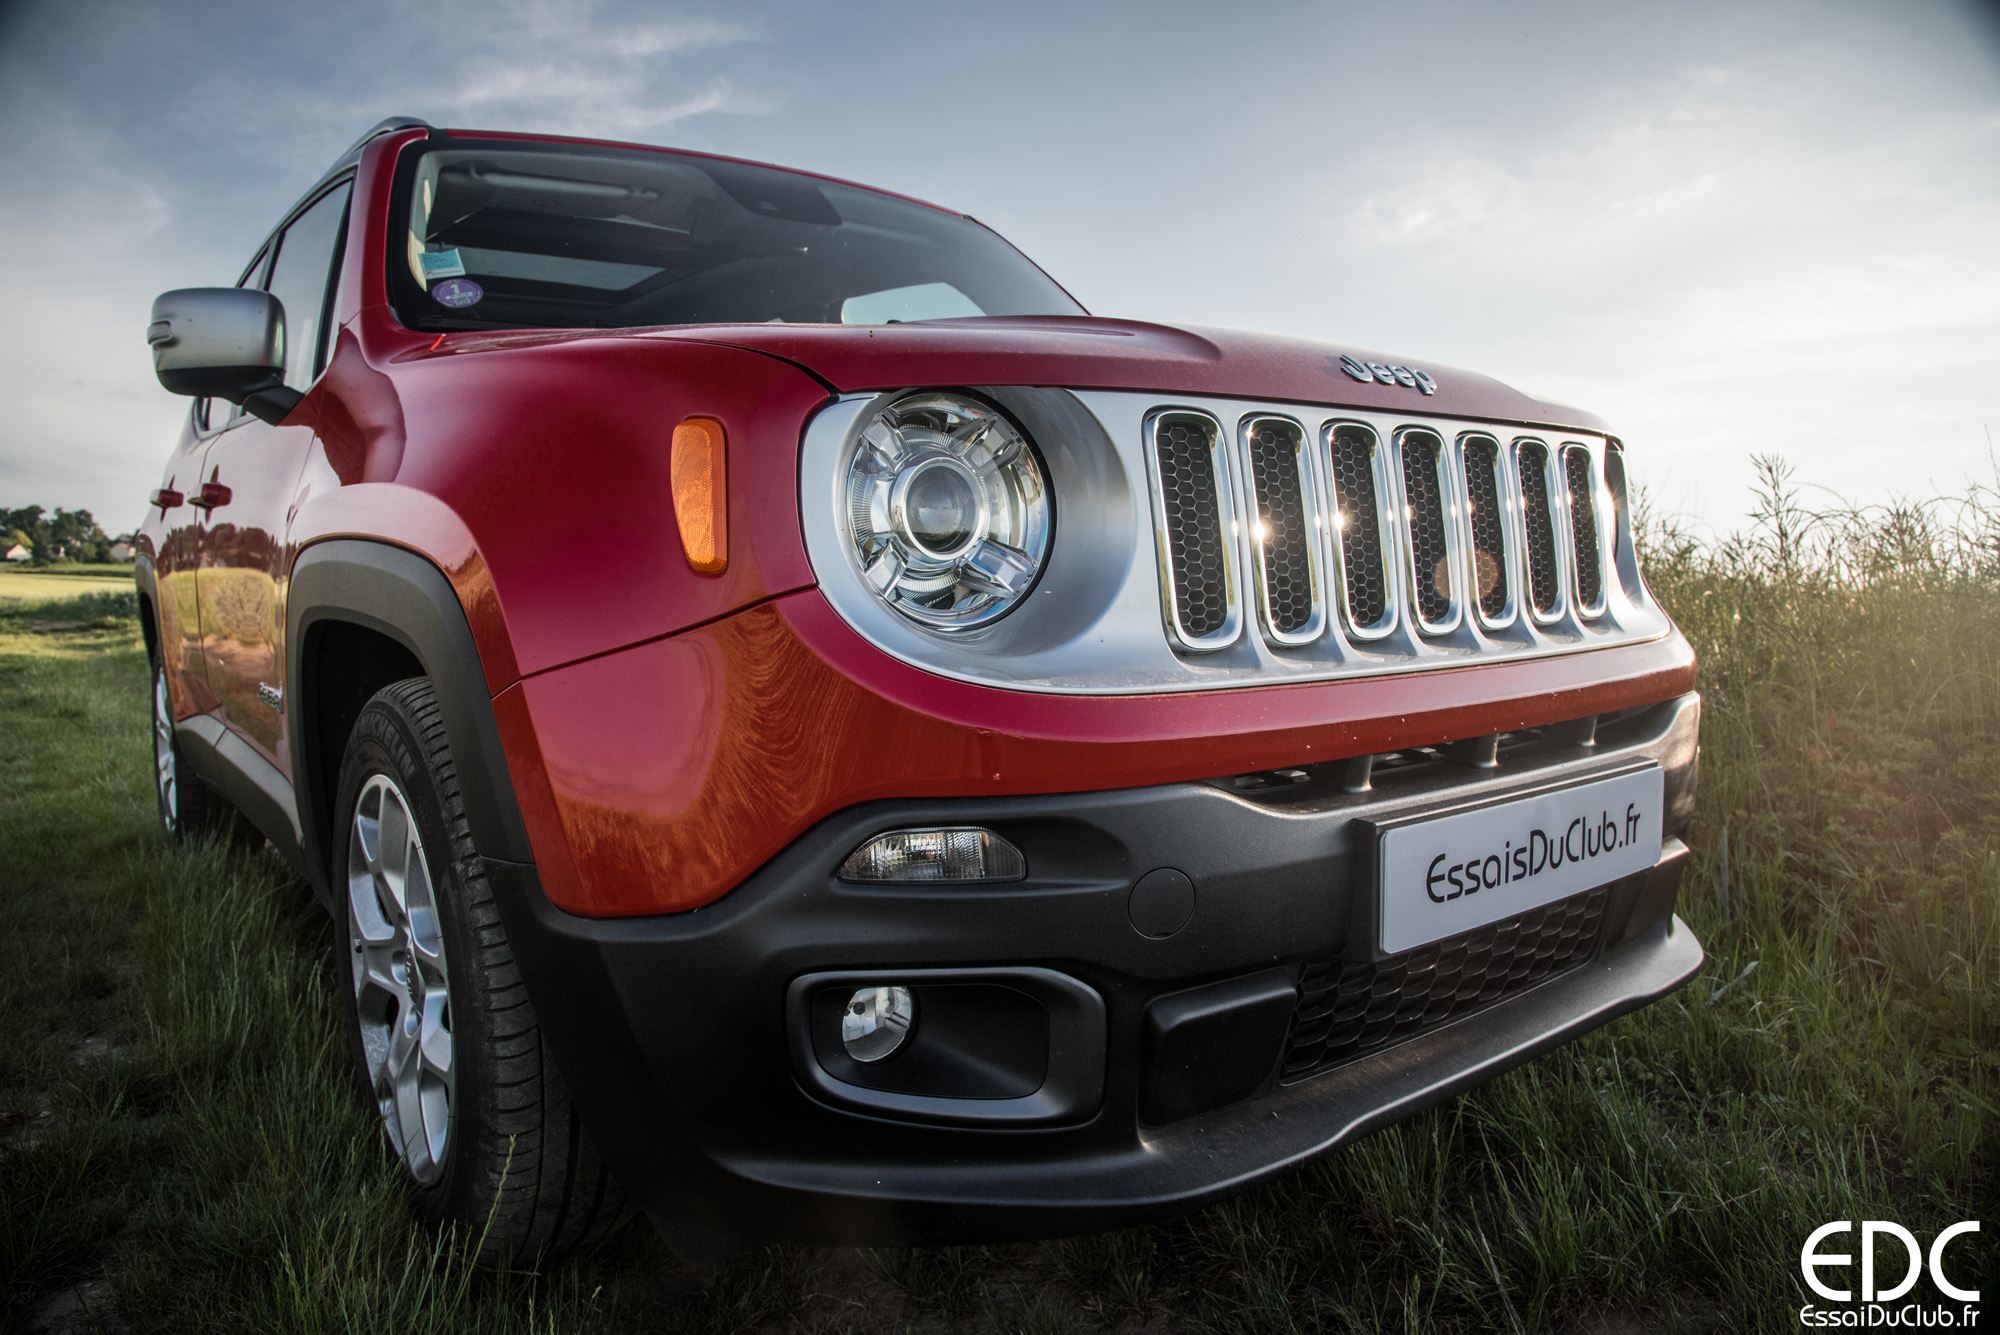 jeep renegade limited 1 4 multiair 140 bva6 essais du club. Black Bedroom Furniture Sets. Home Design Ideas